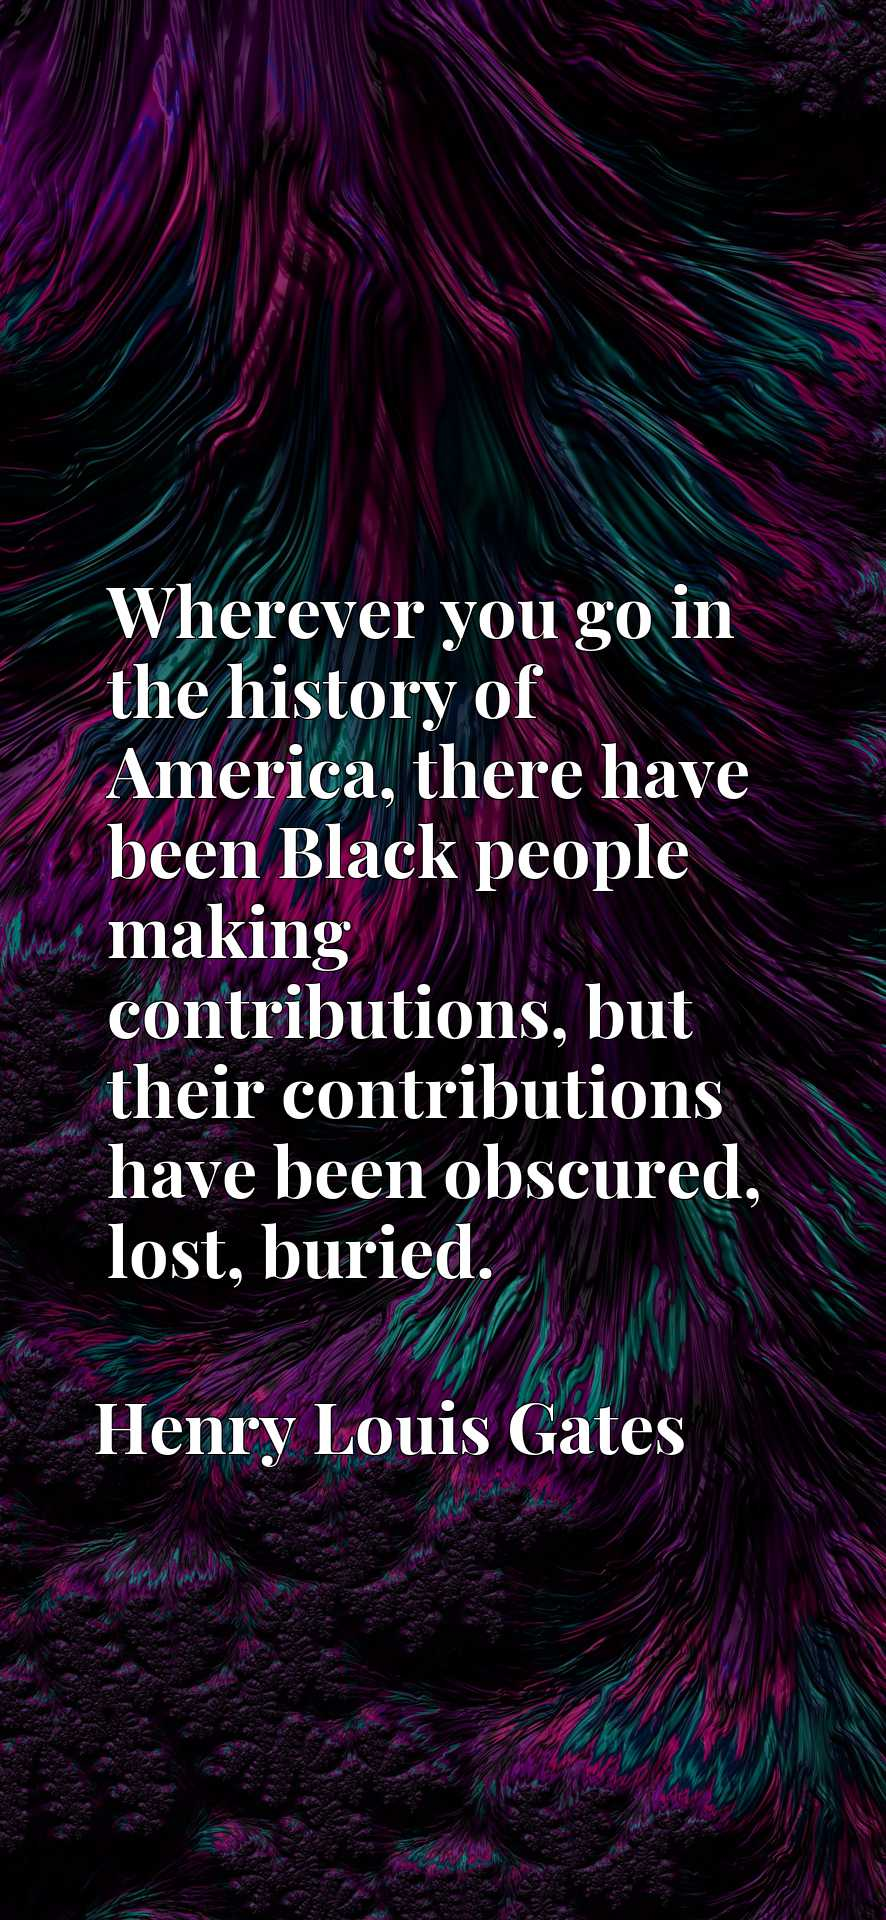 Wherever you go in the history of America, there have been Black people making contributions, but their contributions have been obscured, lost, buried.